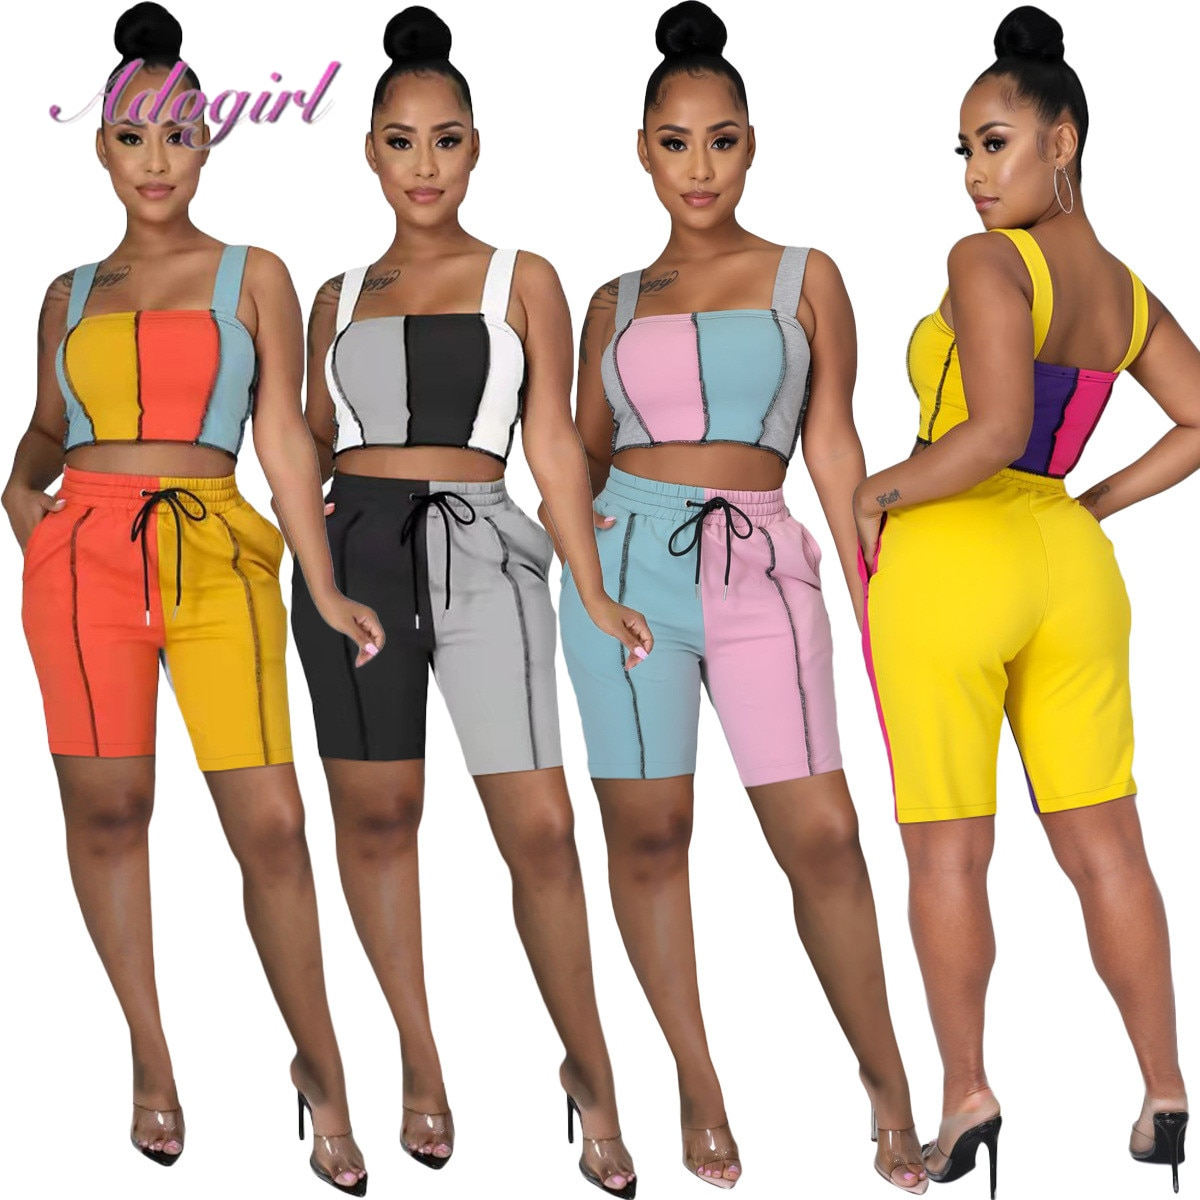 2019 women summer patchwork tank tee top skinny pencil pants suit 2pcs set sporting tracksuit active wear outfit 3 color m6161 Workout Summer Tracksuit Women Causal Stripe Color Patchwork Sleeveless Tank Tops Shorts Pants Suit Outfit Jogger Two Piece Sets